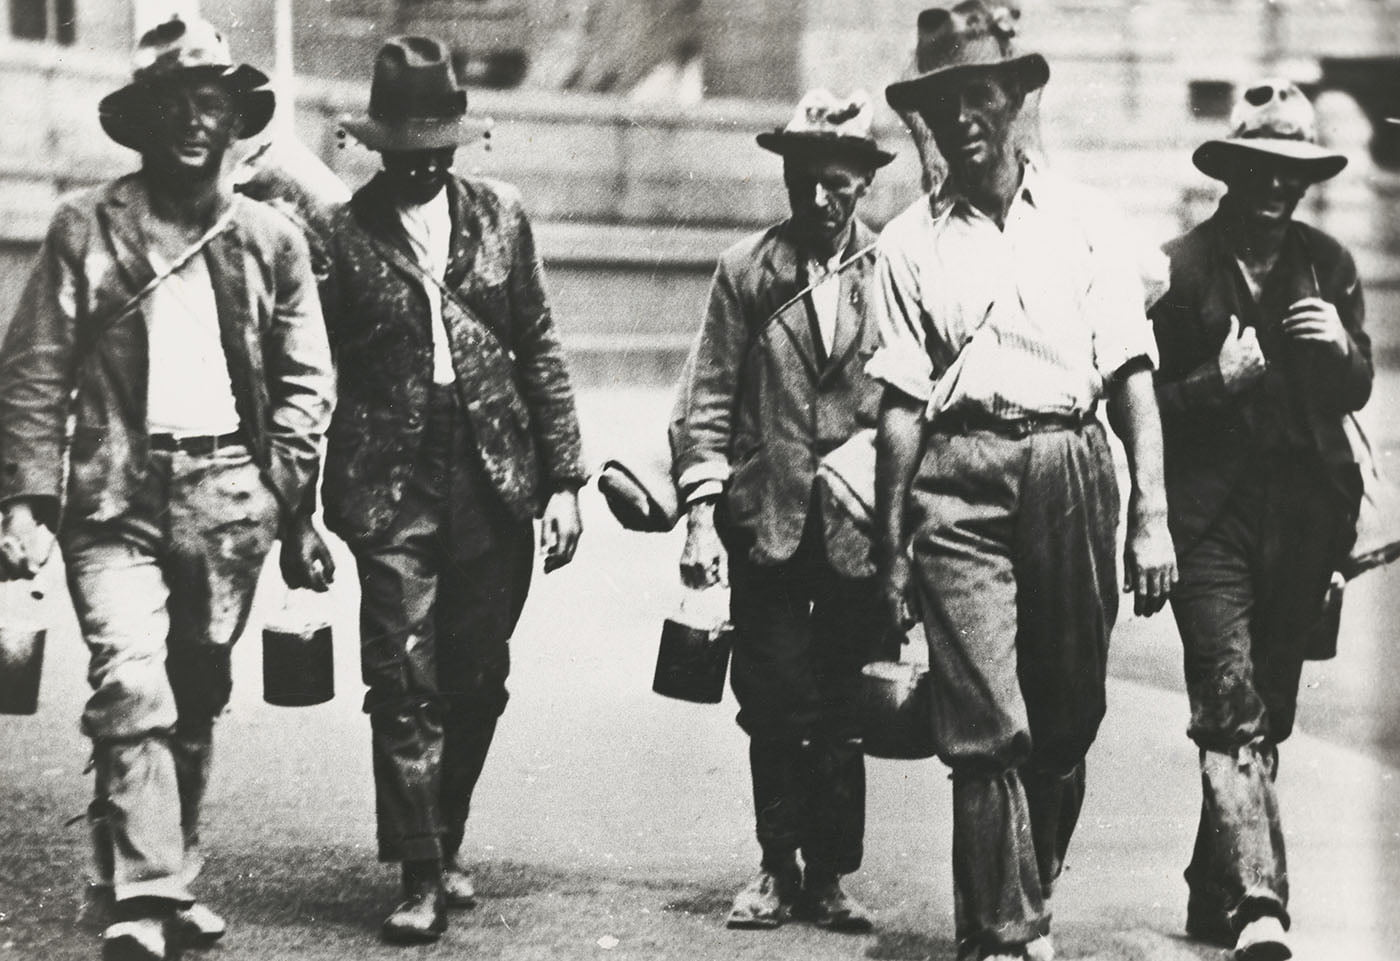 Five men looking for work in the Great Depression, ca. 1930 [pic